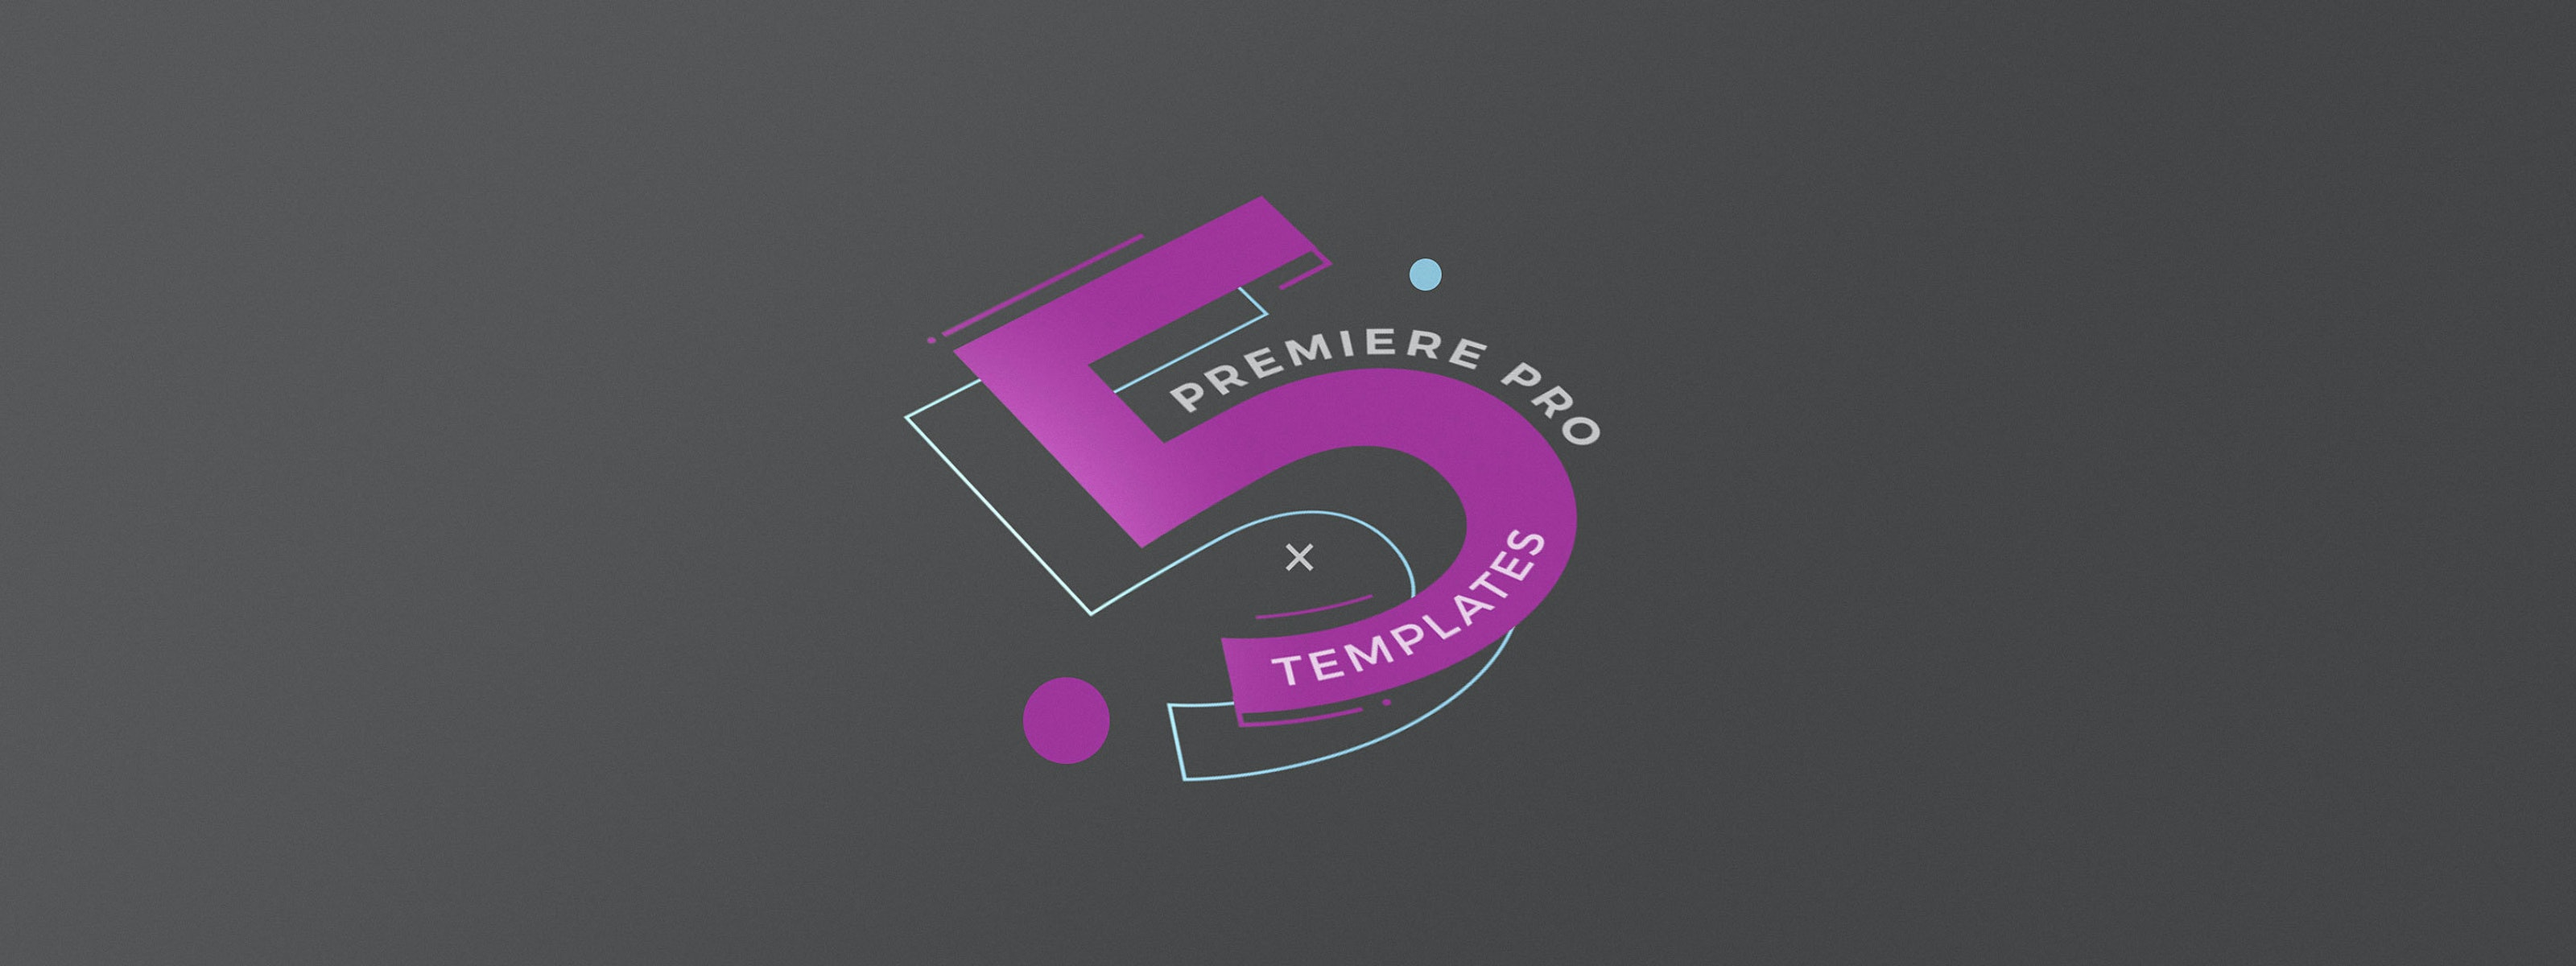 5 premiere pro title templates you can use again again for Free premiere pro title templates